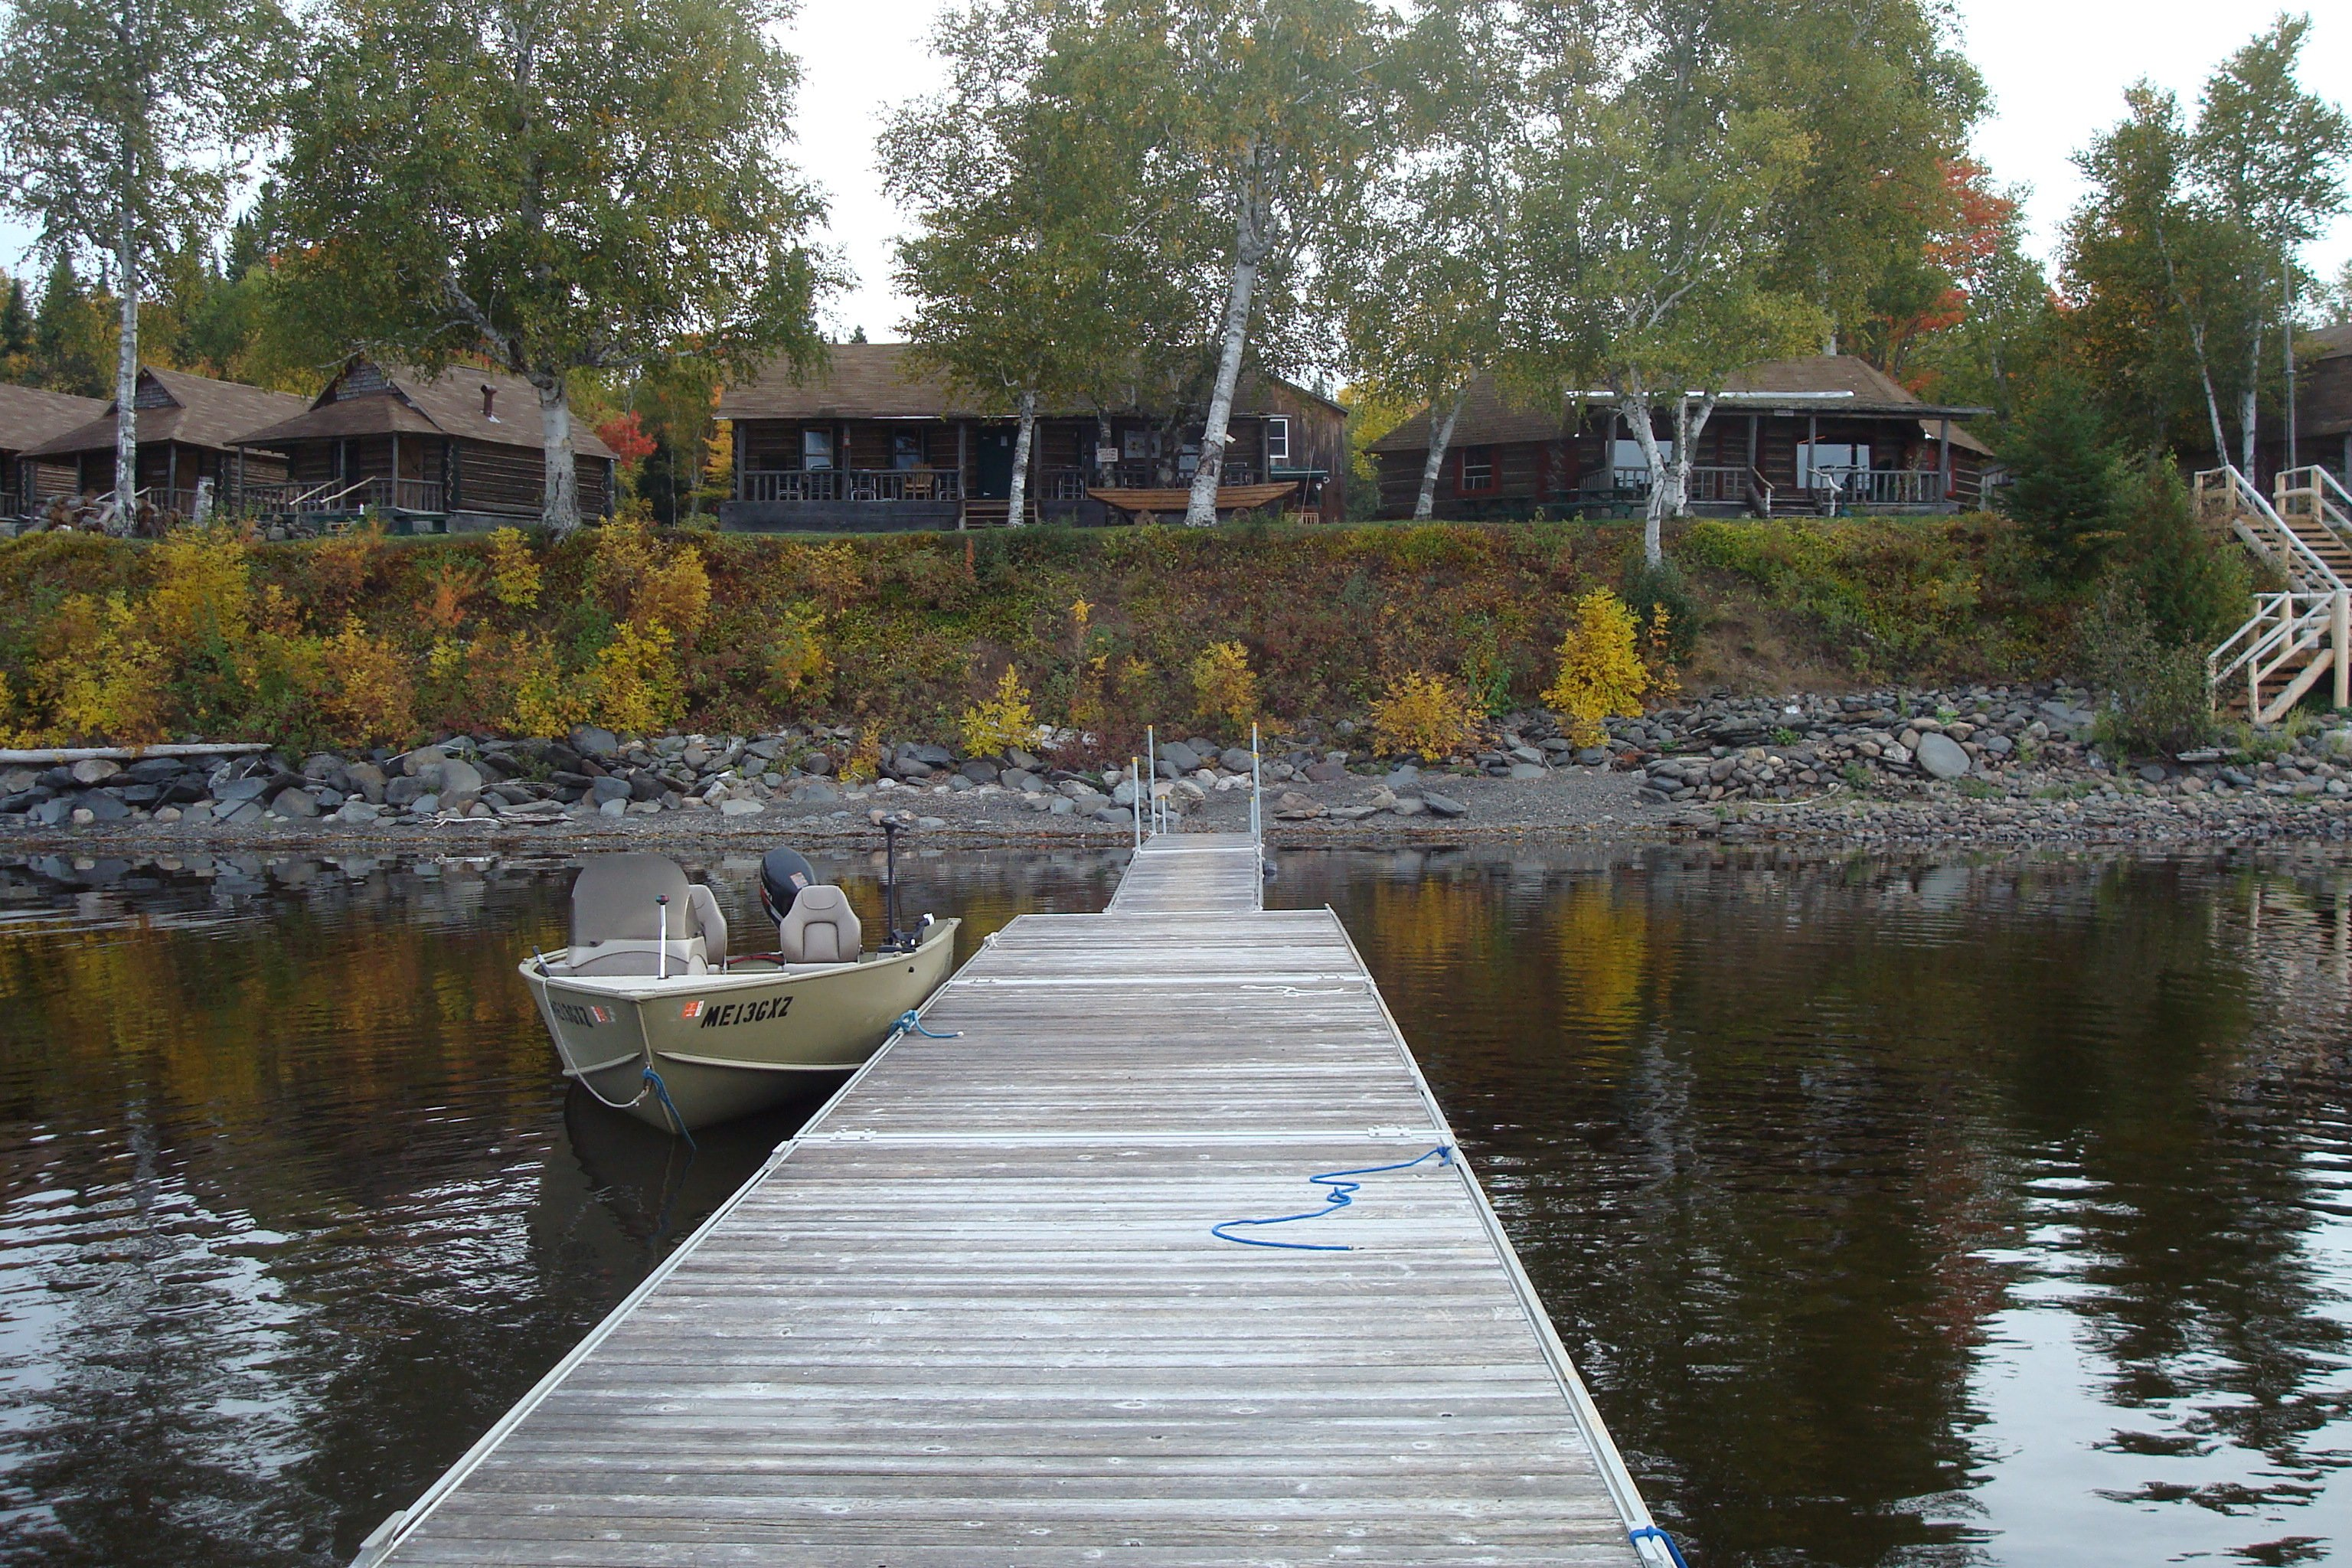 View from the lakeside dock